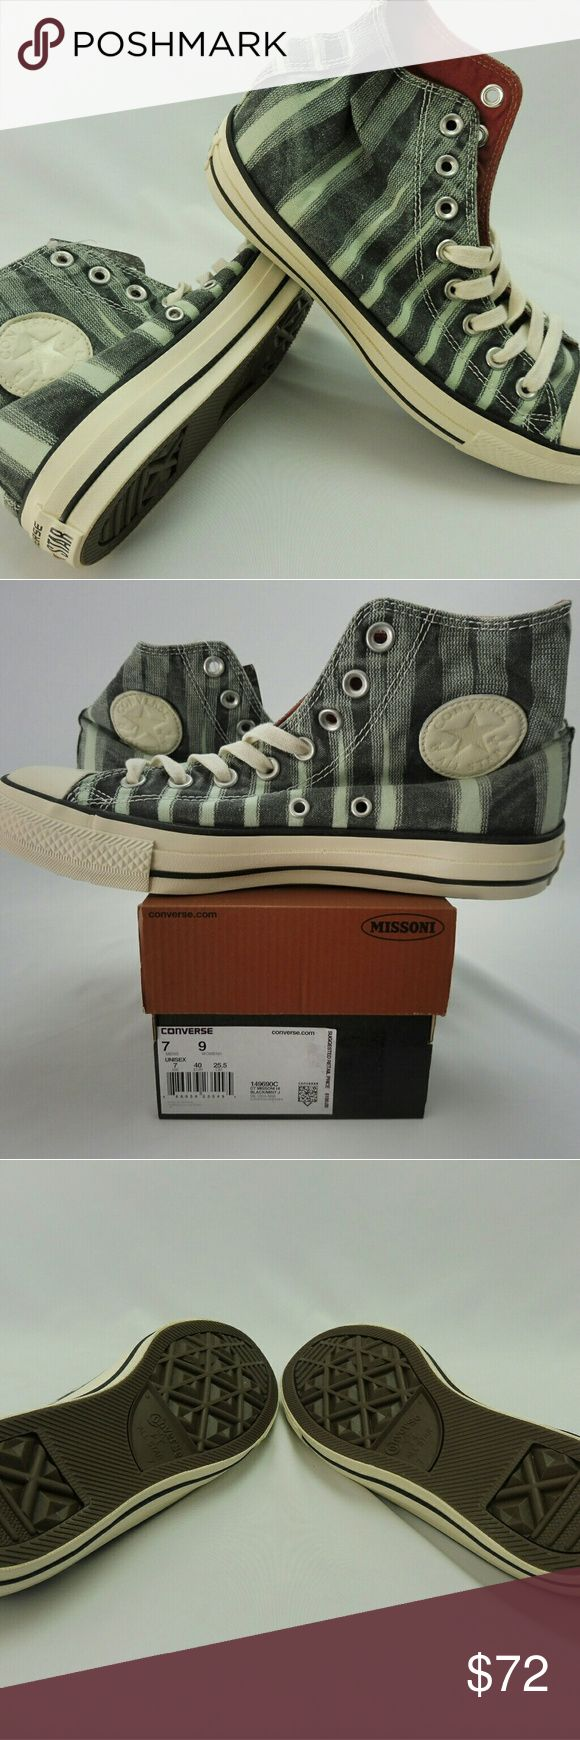 Converse, NWT, All Star Chuck Taylor, Missoni Converse, NWT, All Star Chuck Taylor, Missoni CT HI, Black/Mint Converse Shoes Sneakers